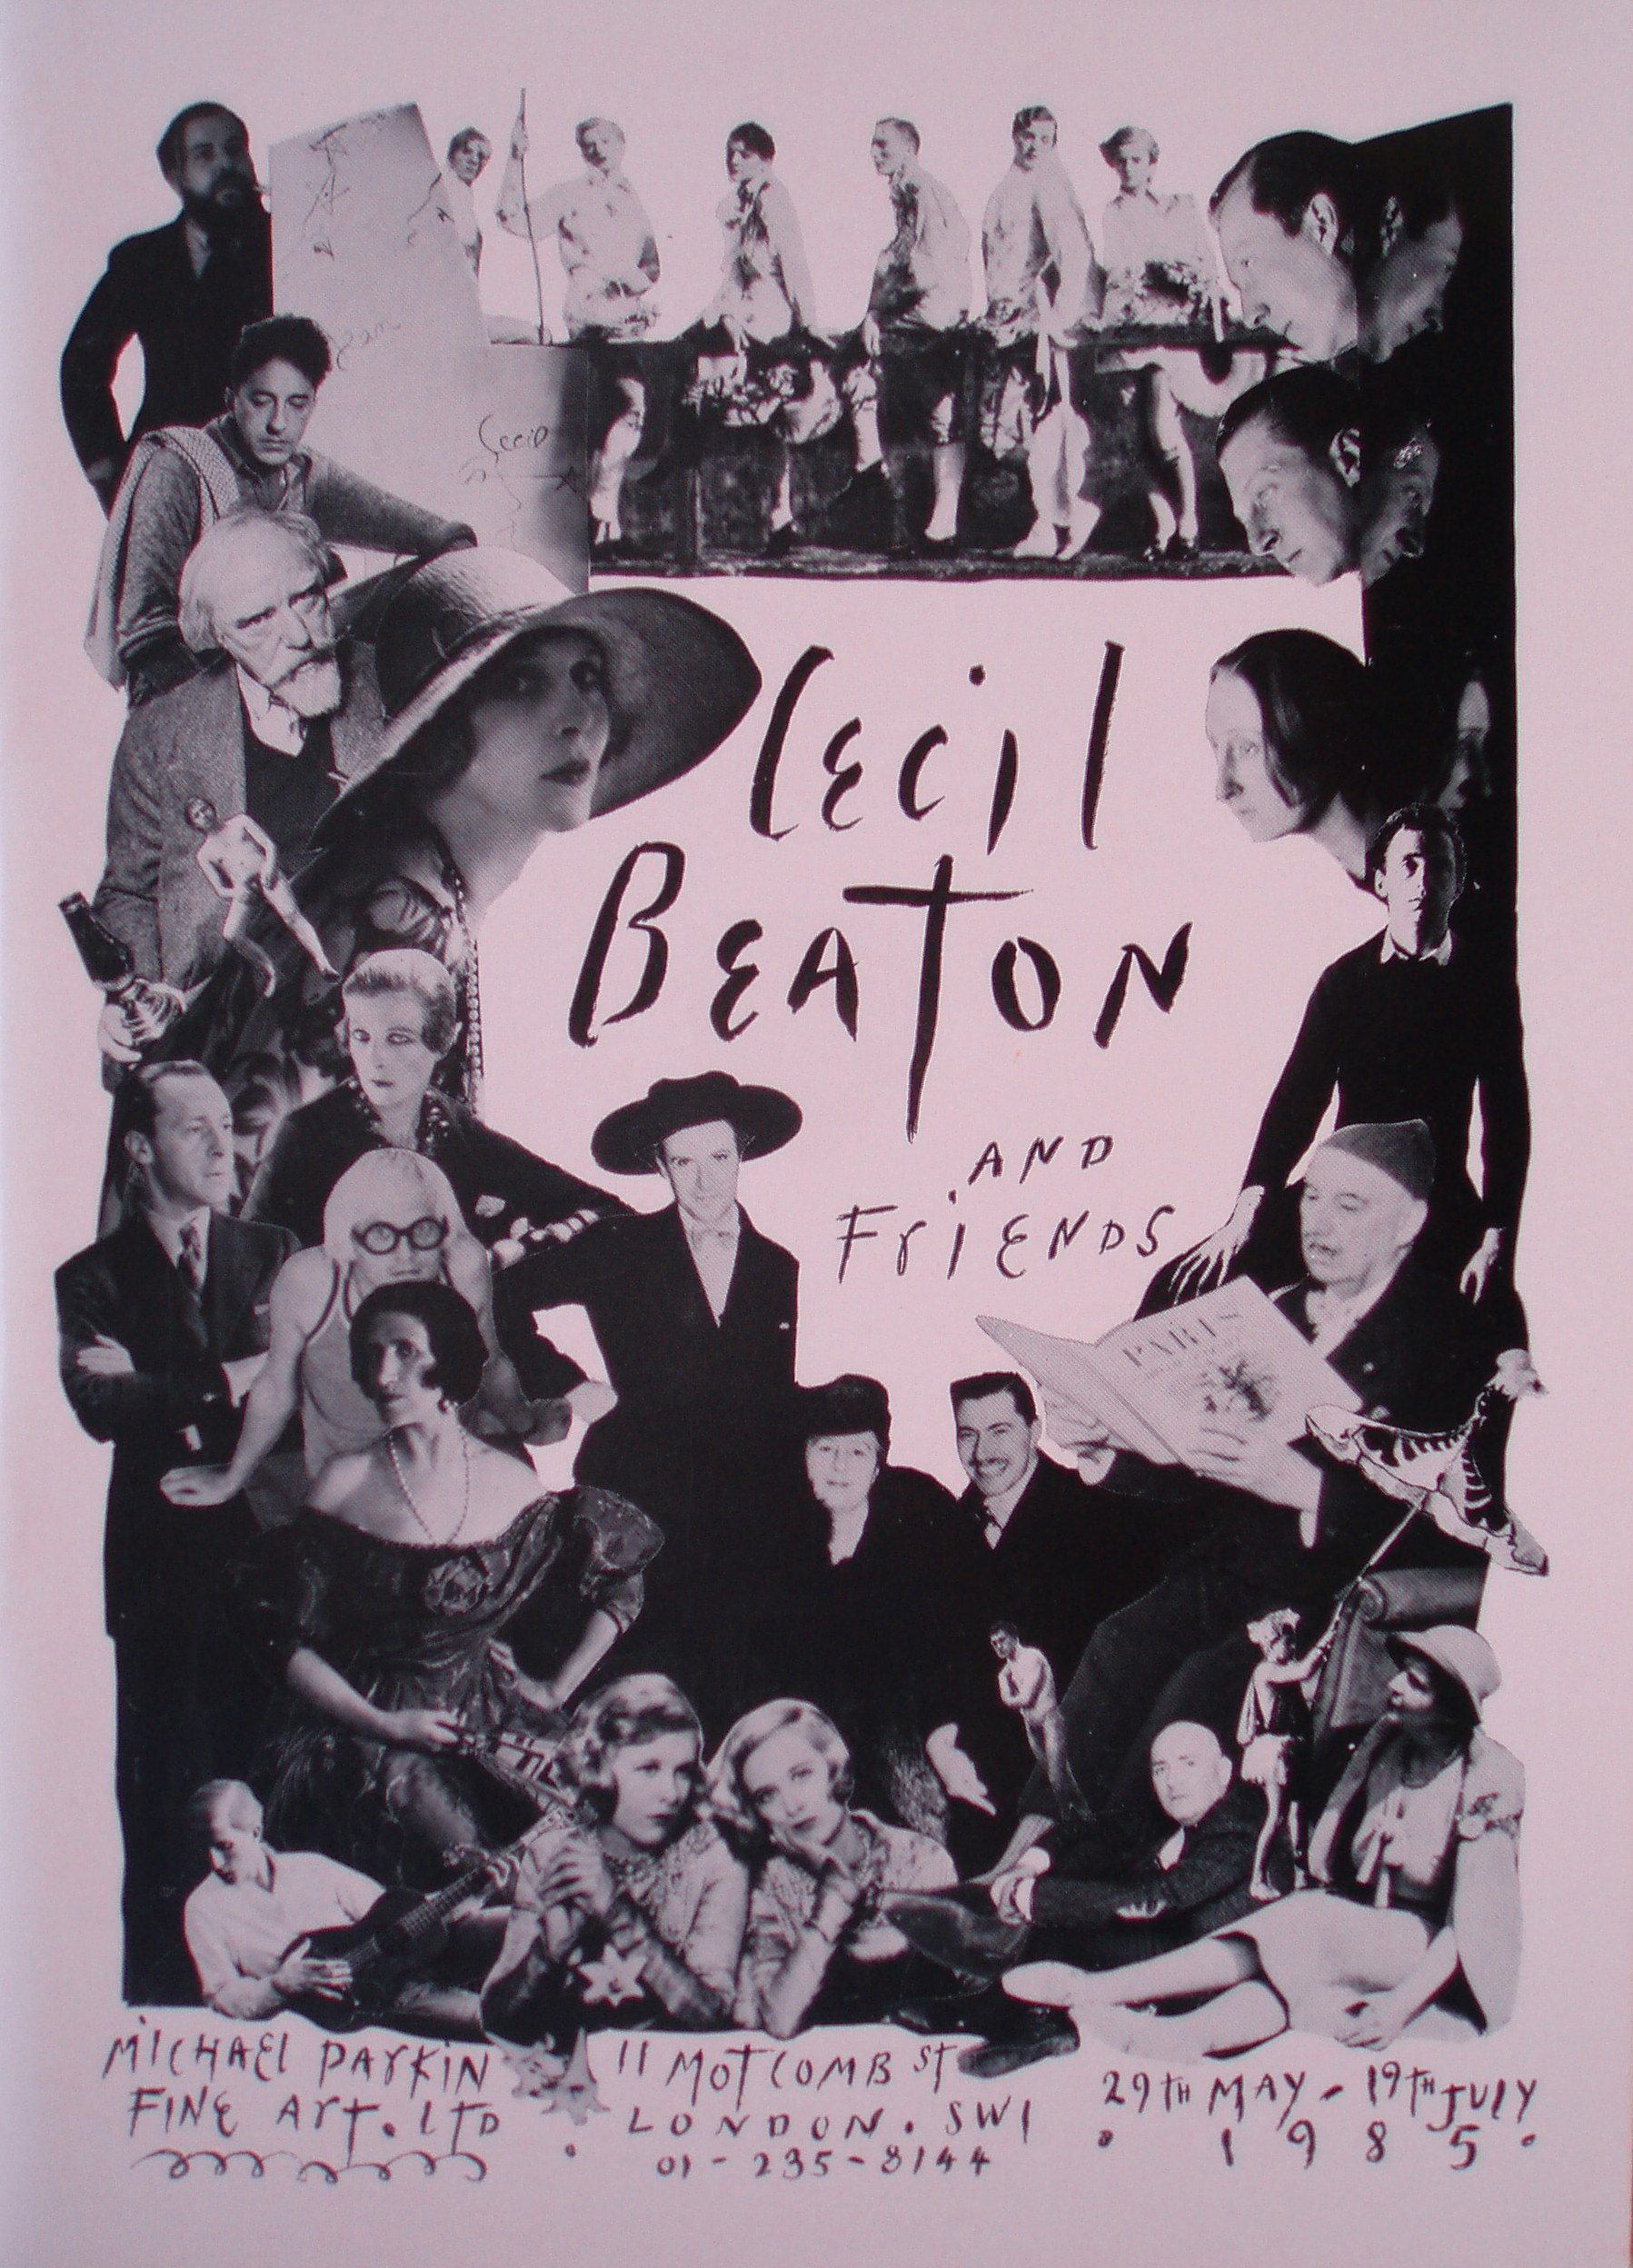 Cecil Beaton & Friends